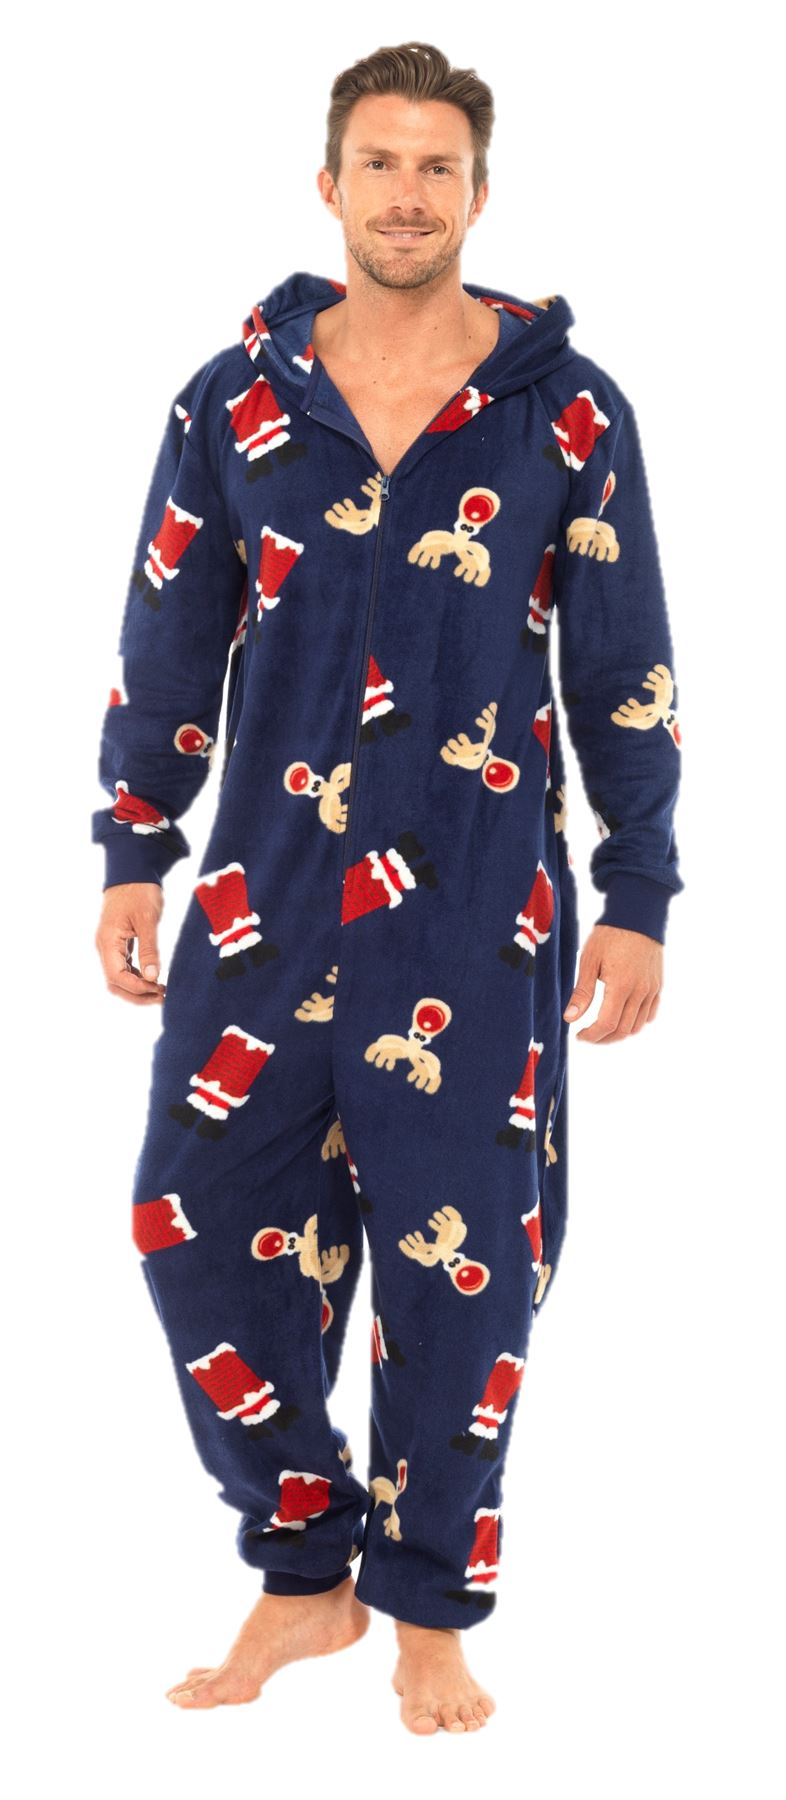 Find great deals on eBay for Mens Christmas Pajamas in Sleepwear and Robes for Men. Shop with confidence.